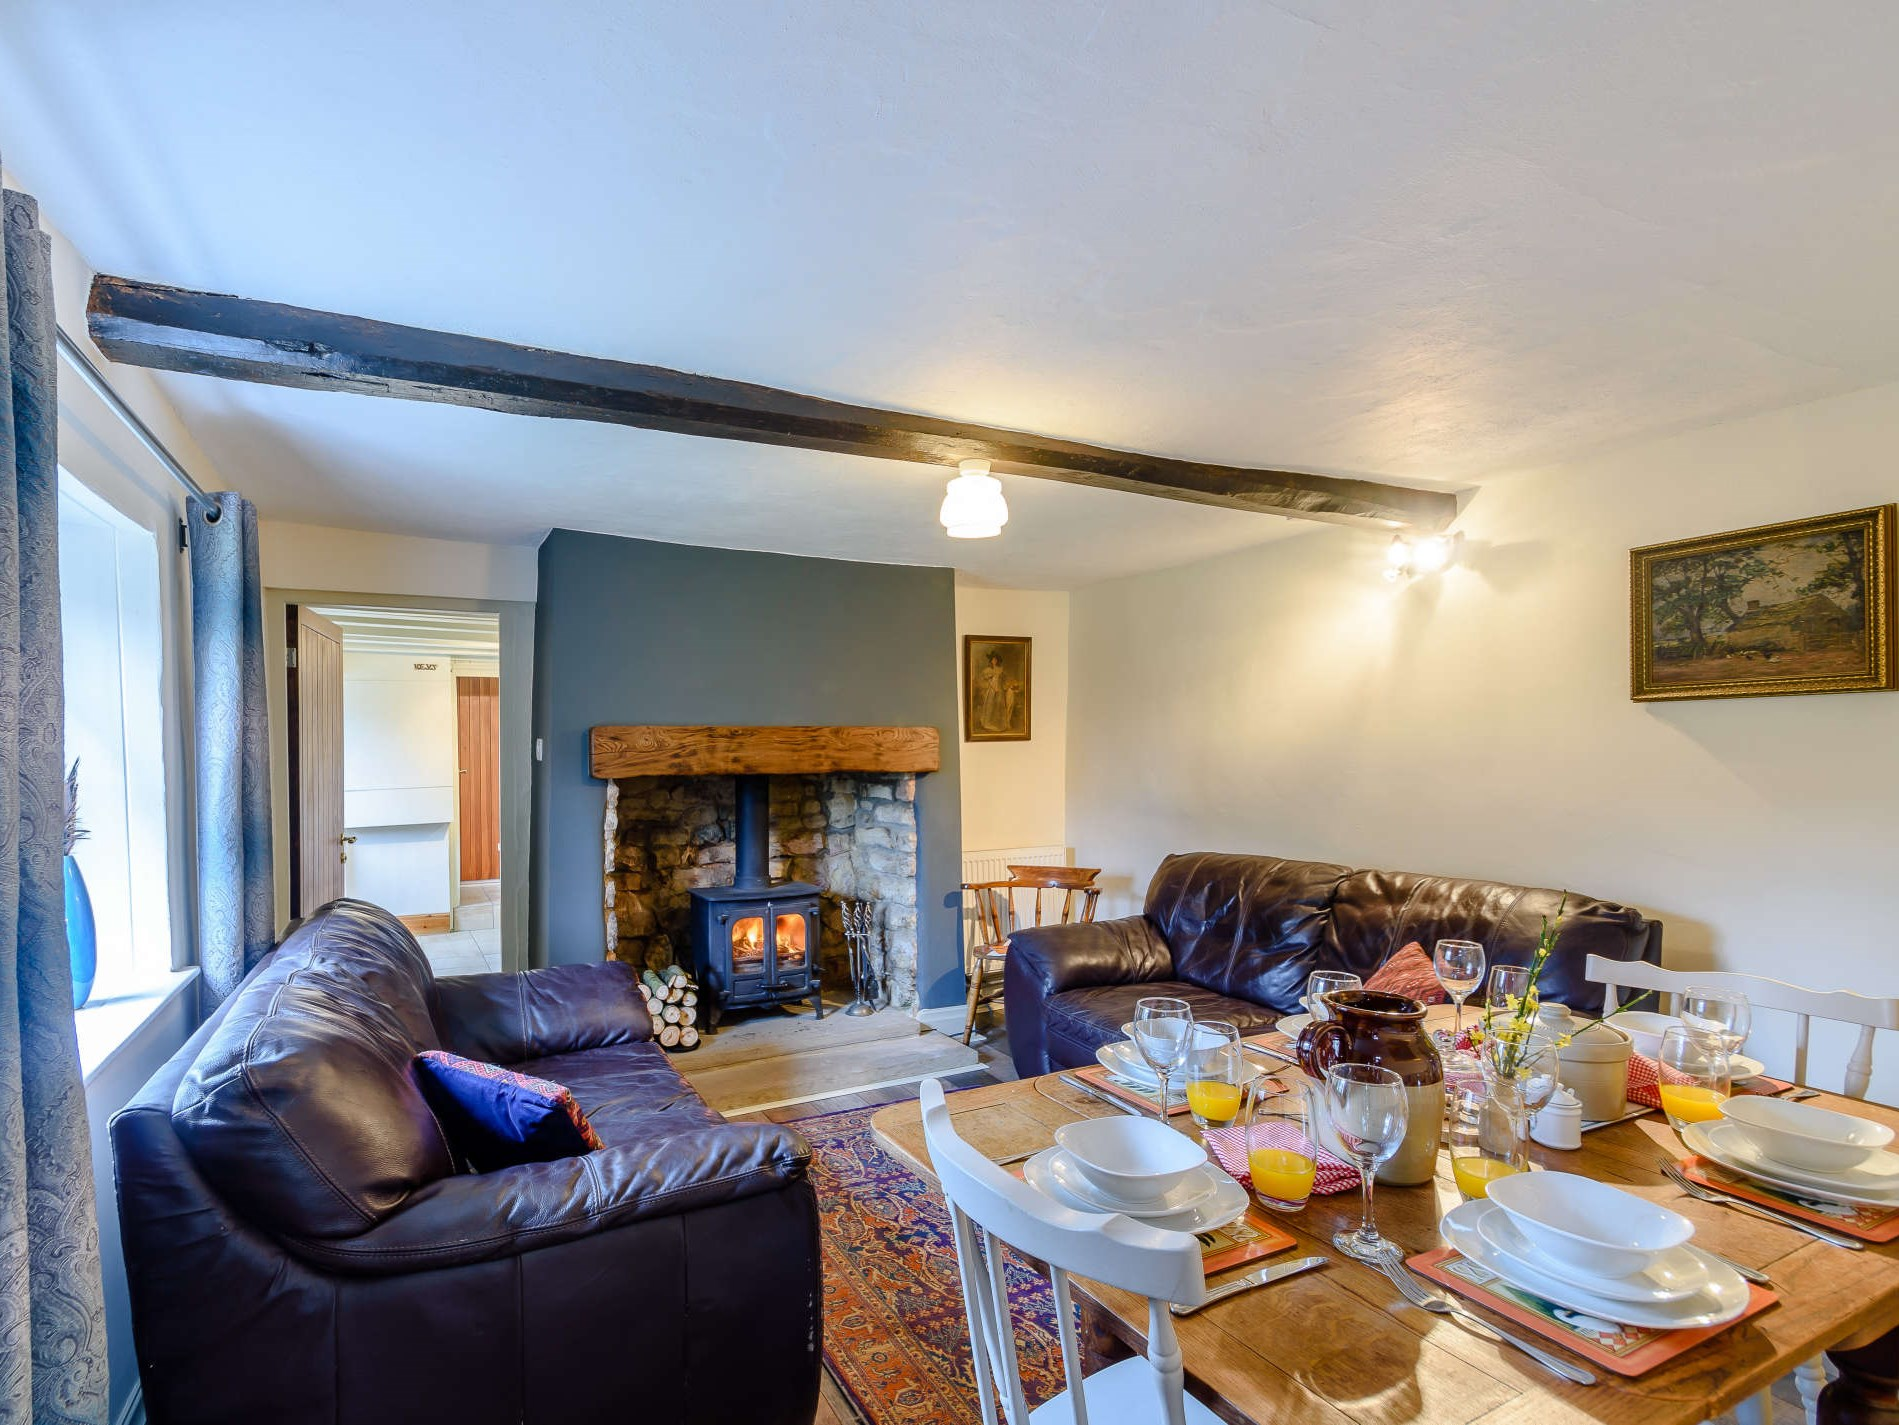 3 Bedroom Barn in North Yorkshire, Tadcaster, Yorkshire Dales